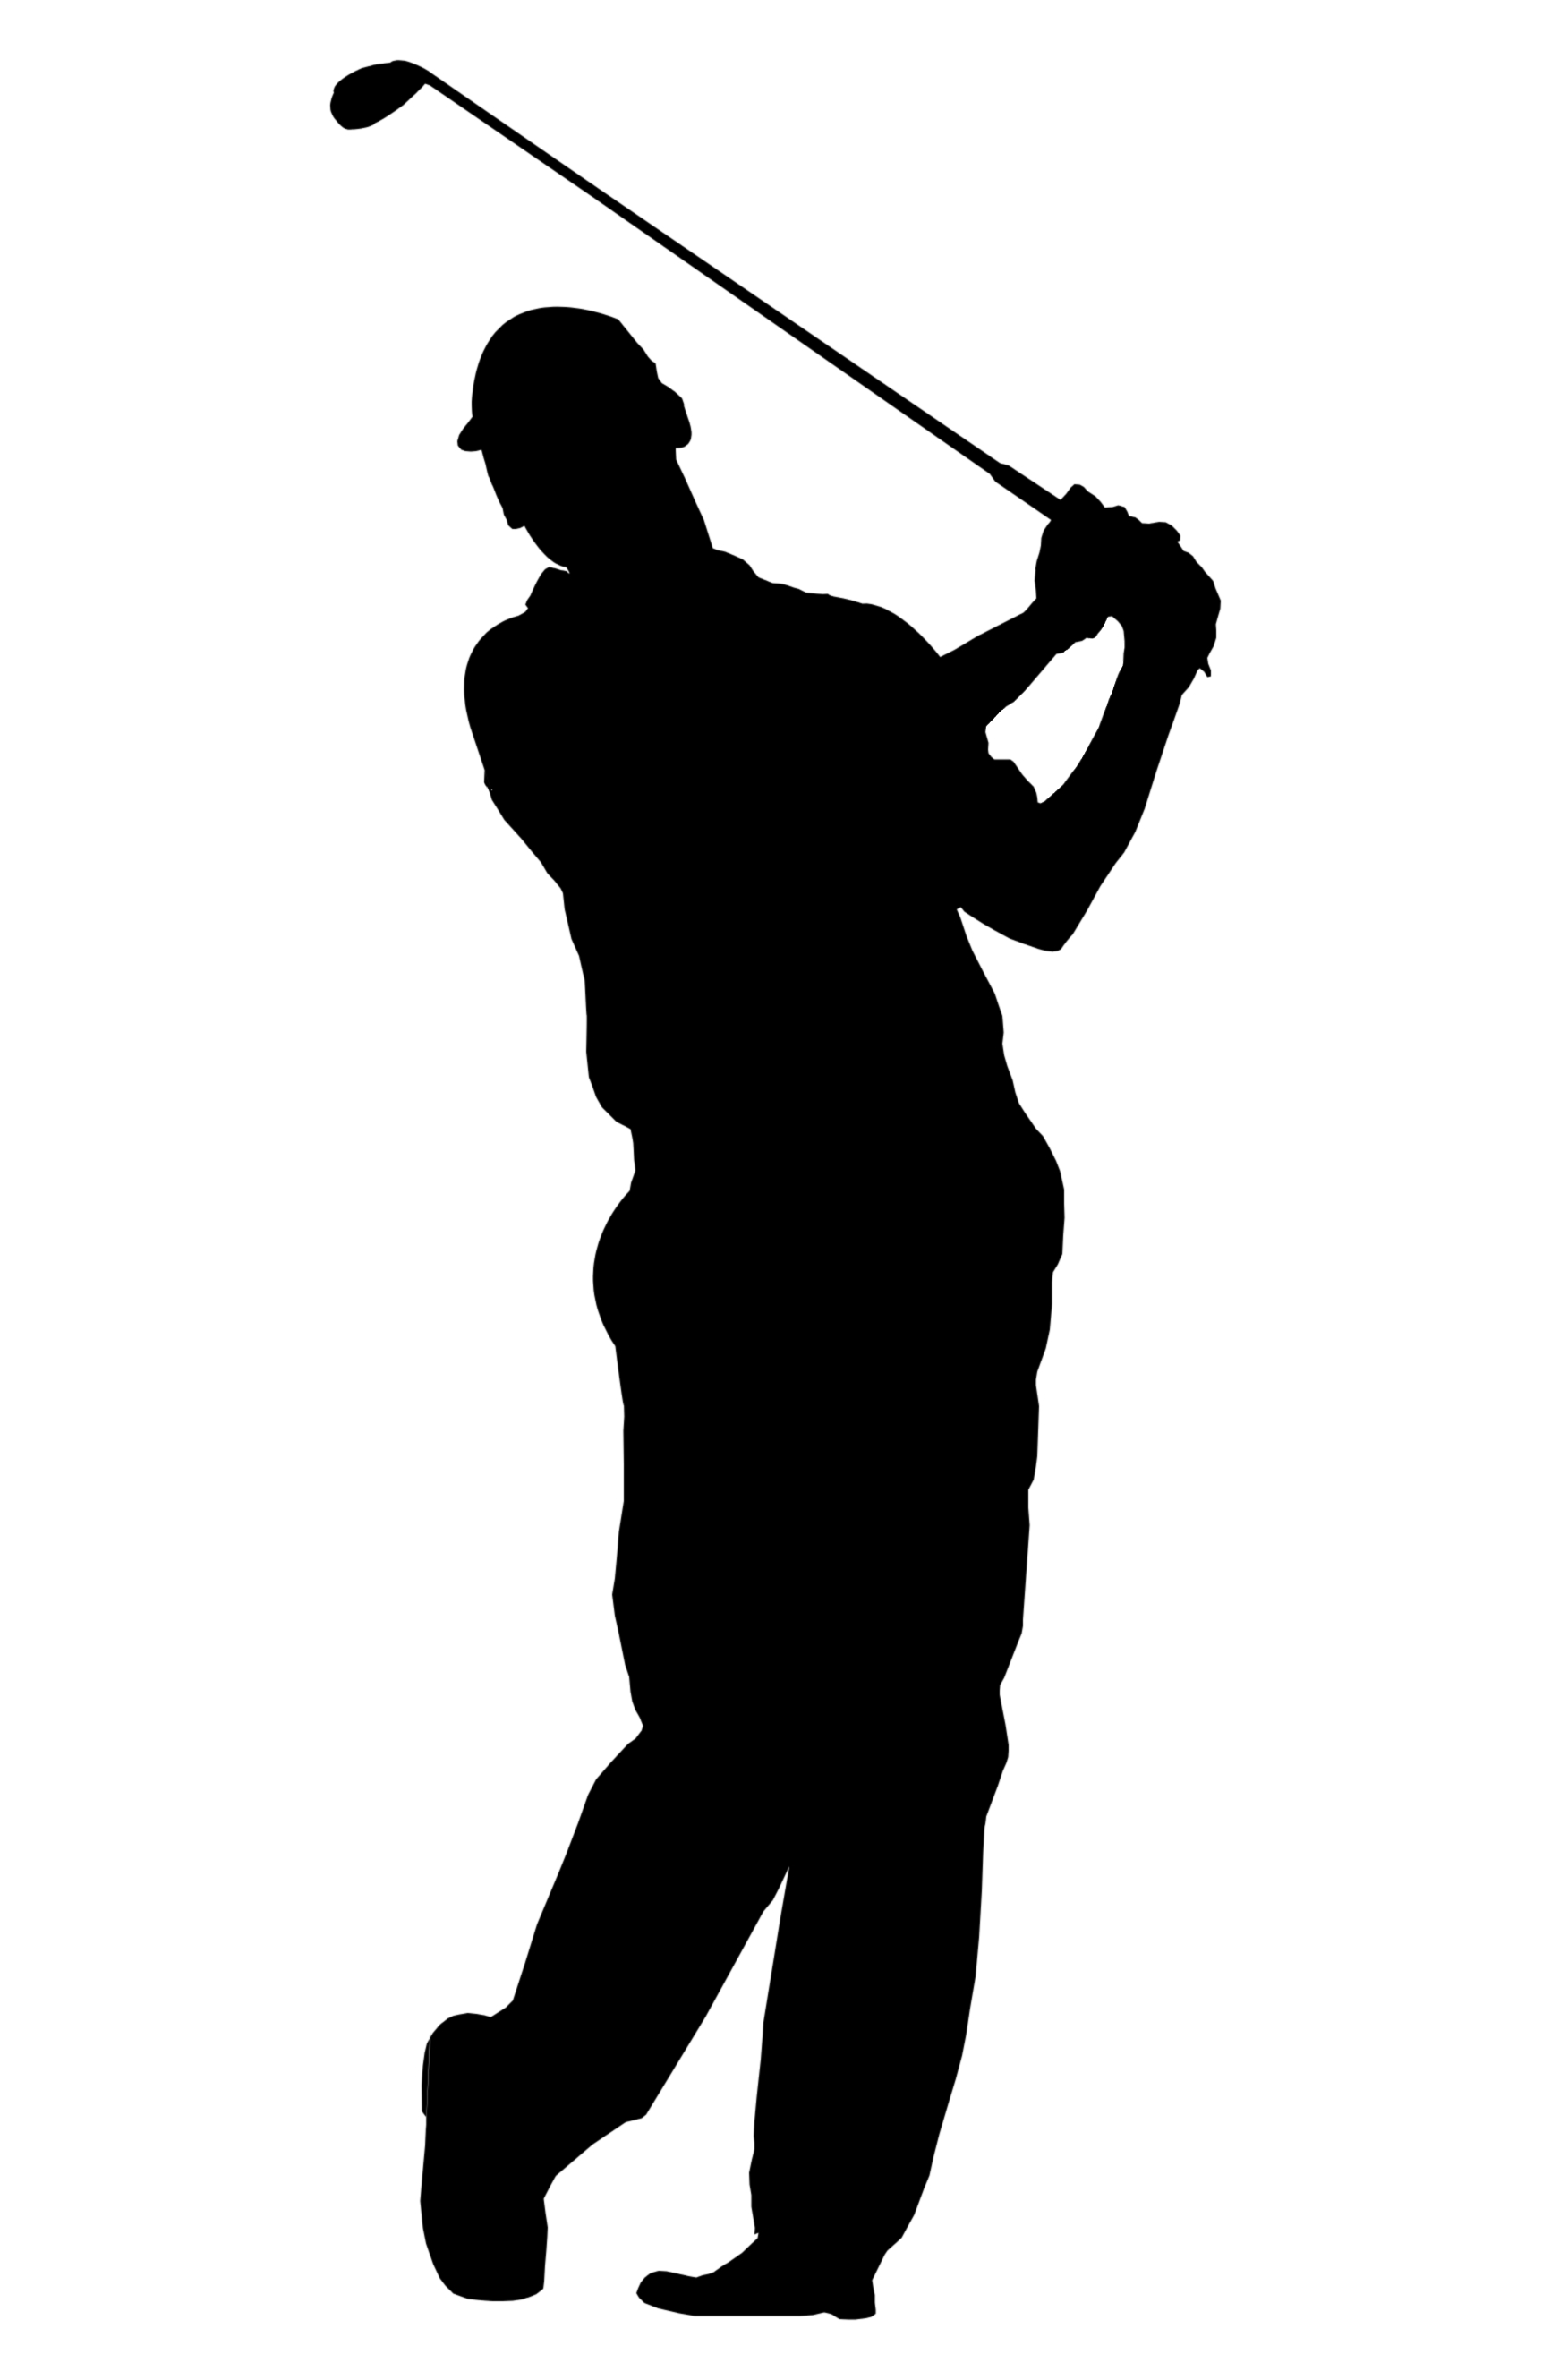 Golfer clipart. Free golf images graphics